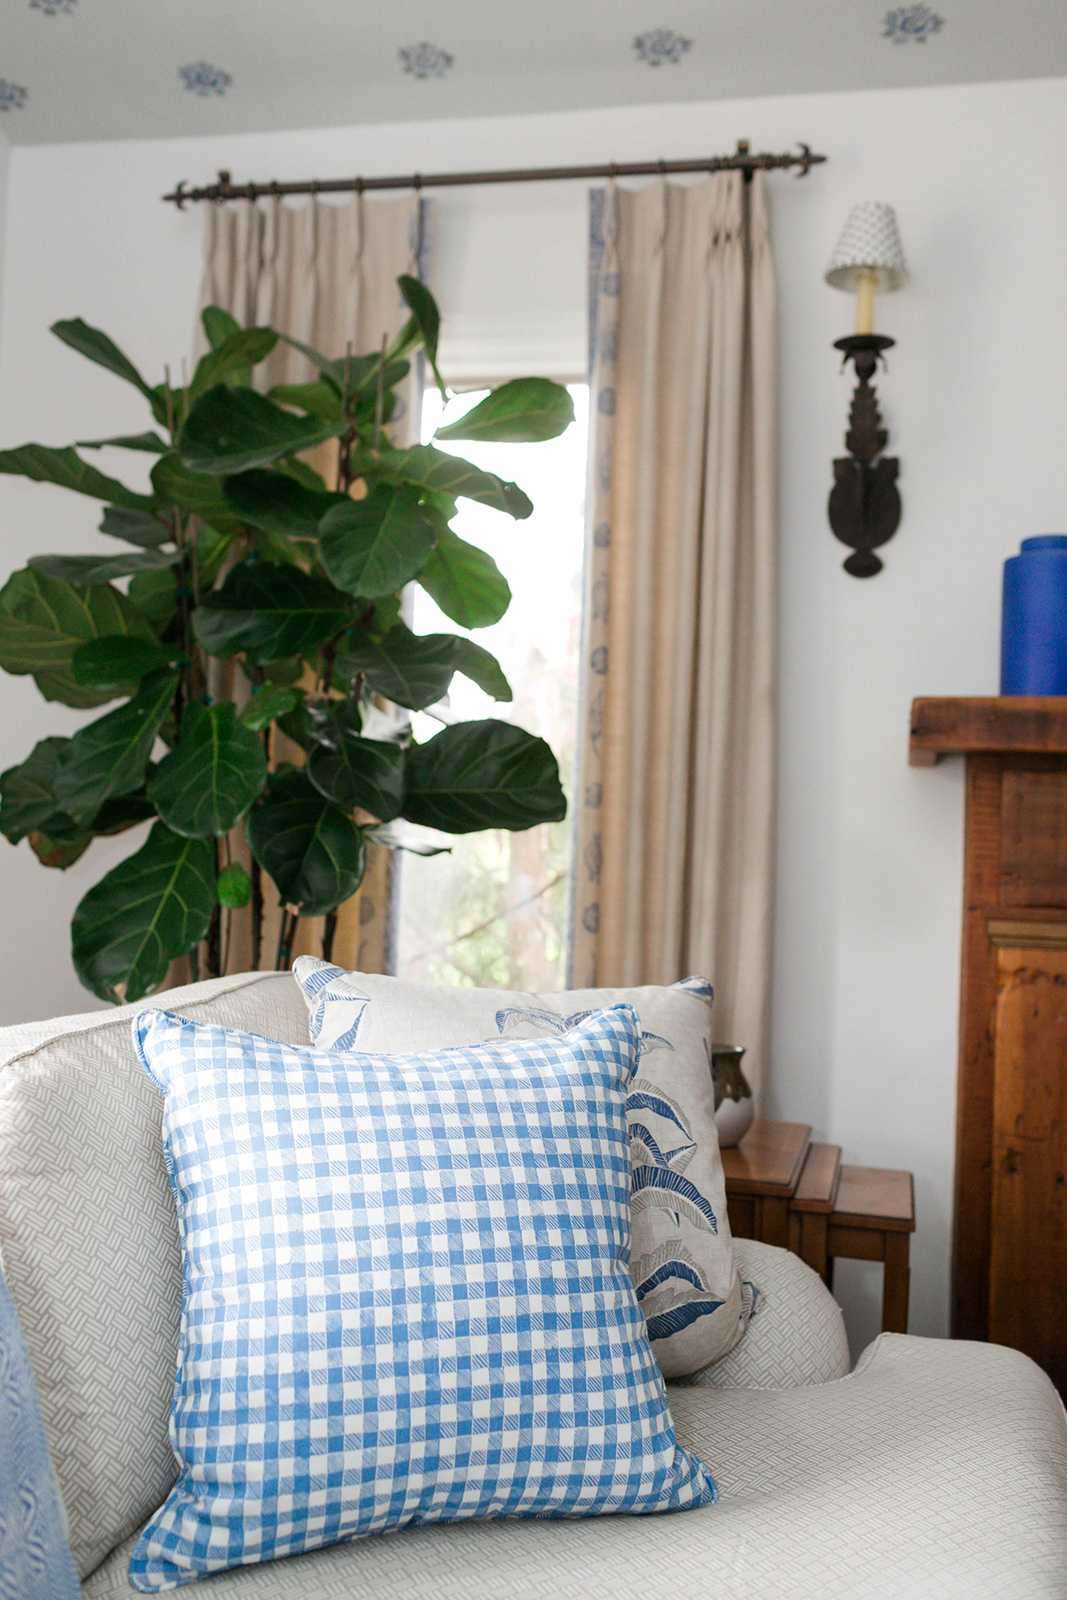 Block Print Gingham Pillow in Blue, Interiors by Sharon Lee, Photo by Mekina Saylor